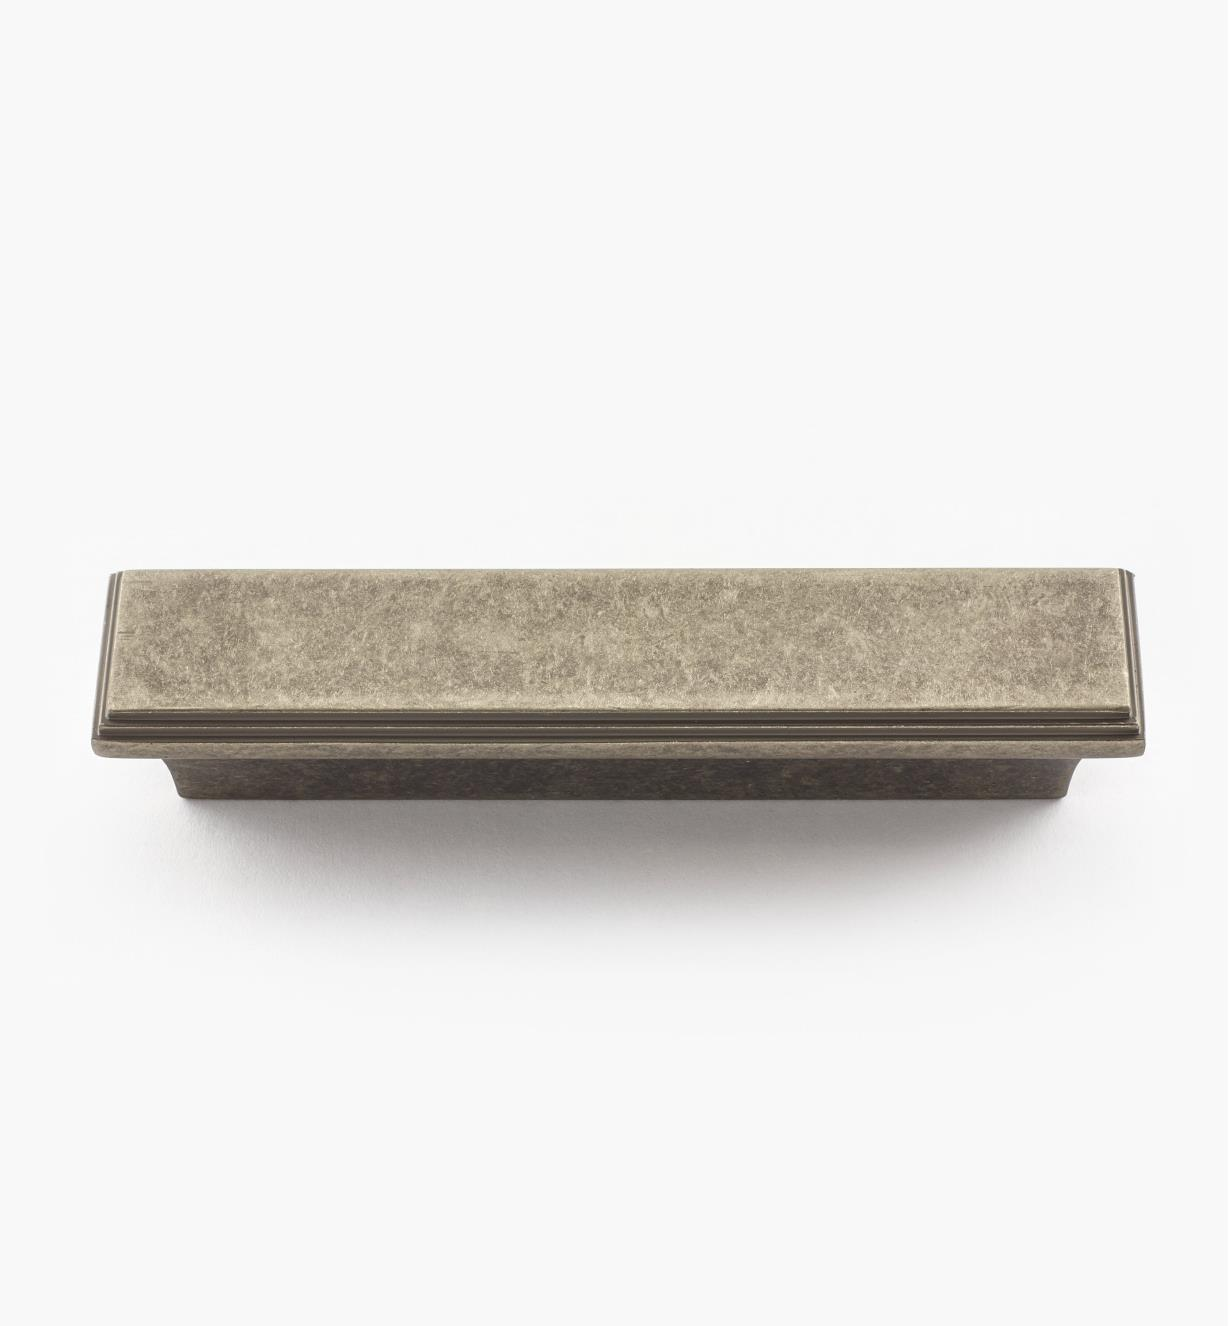 02A3916 - Manor Weathered Nickel Pull